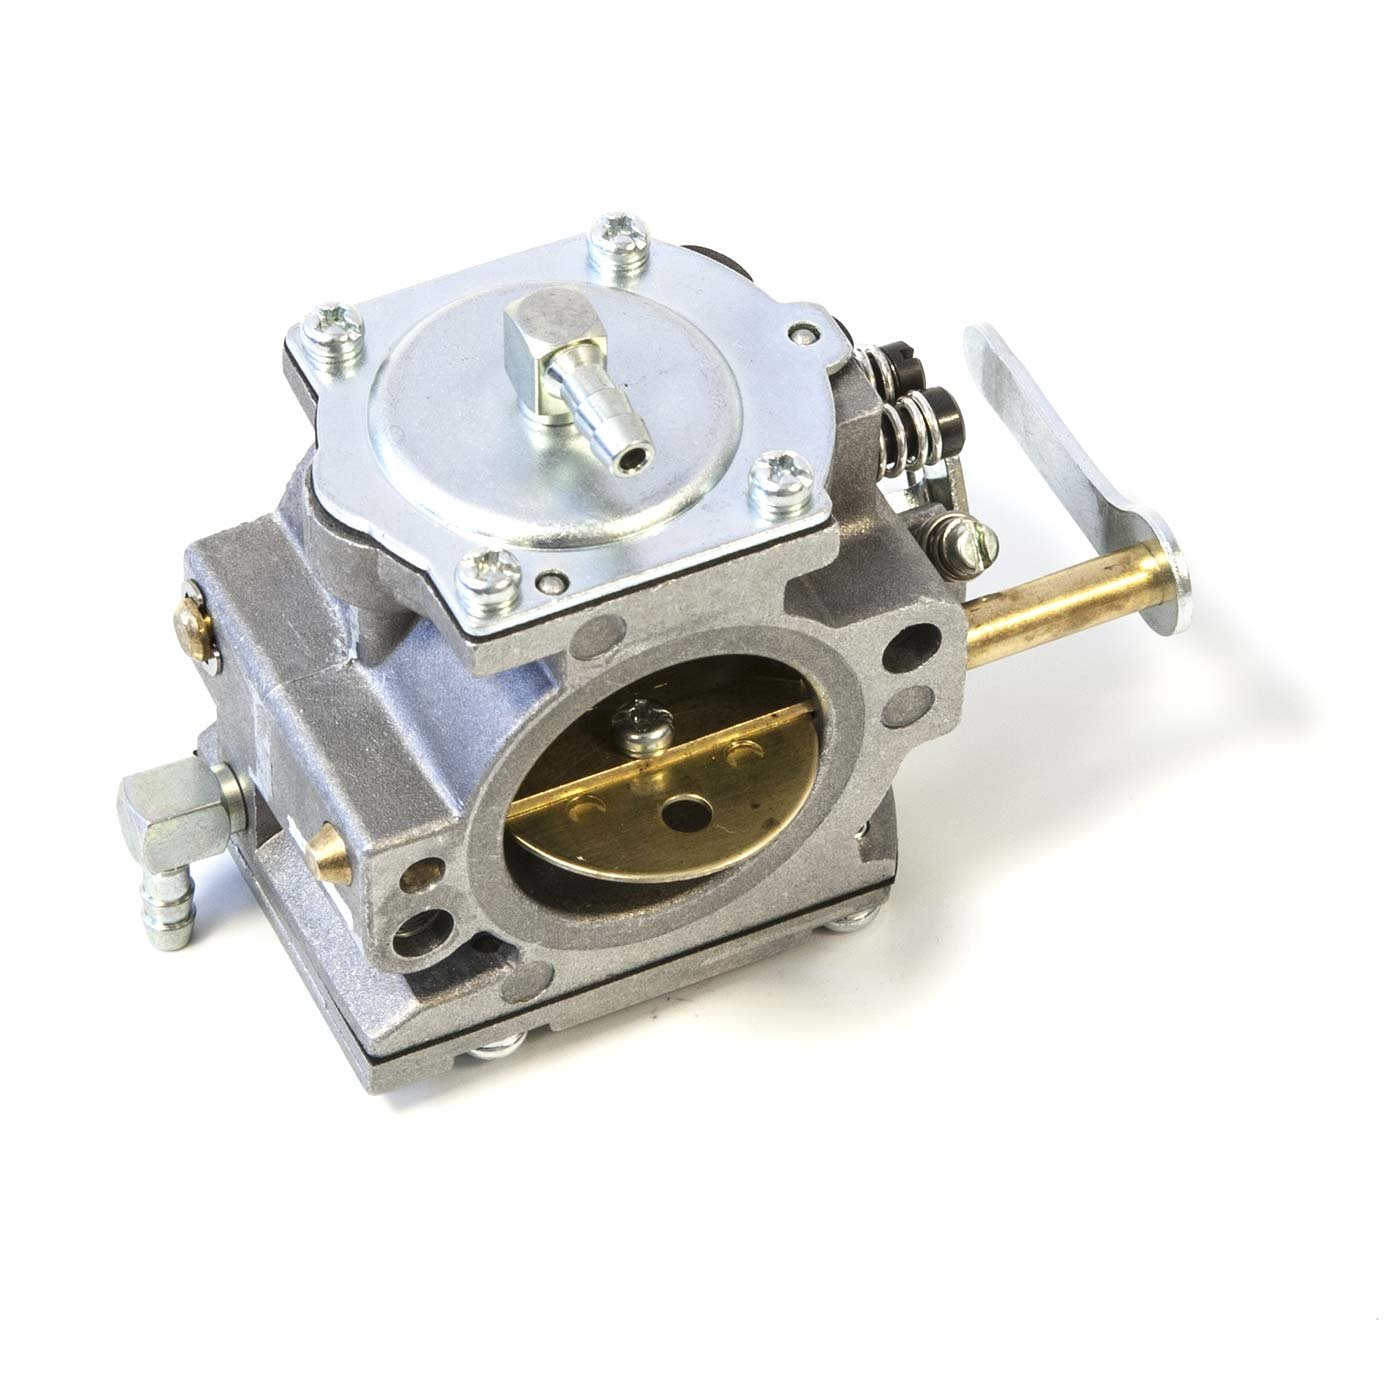 Carburetor for DA150L/170